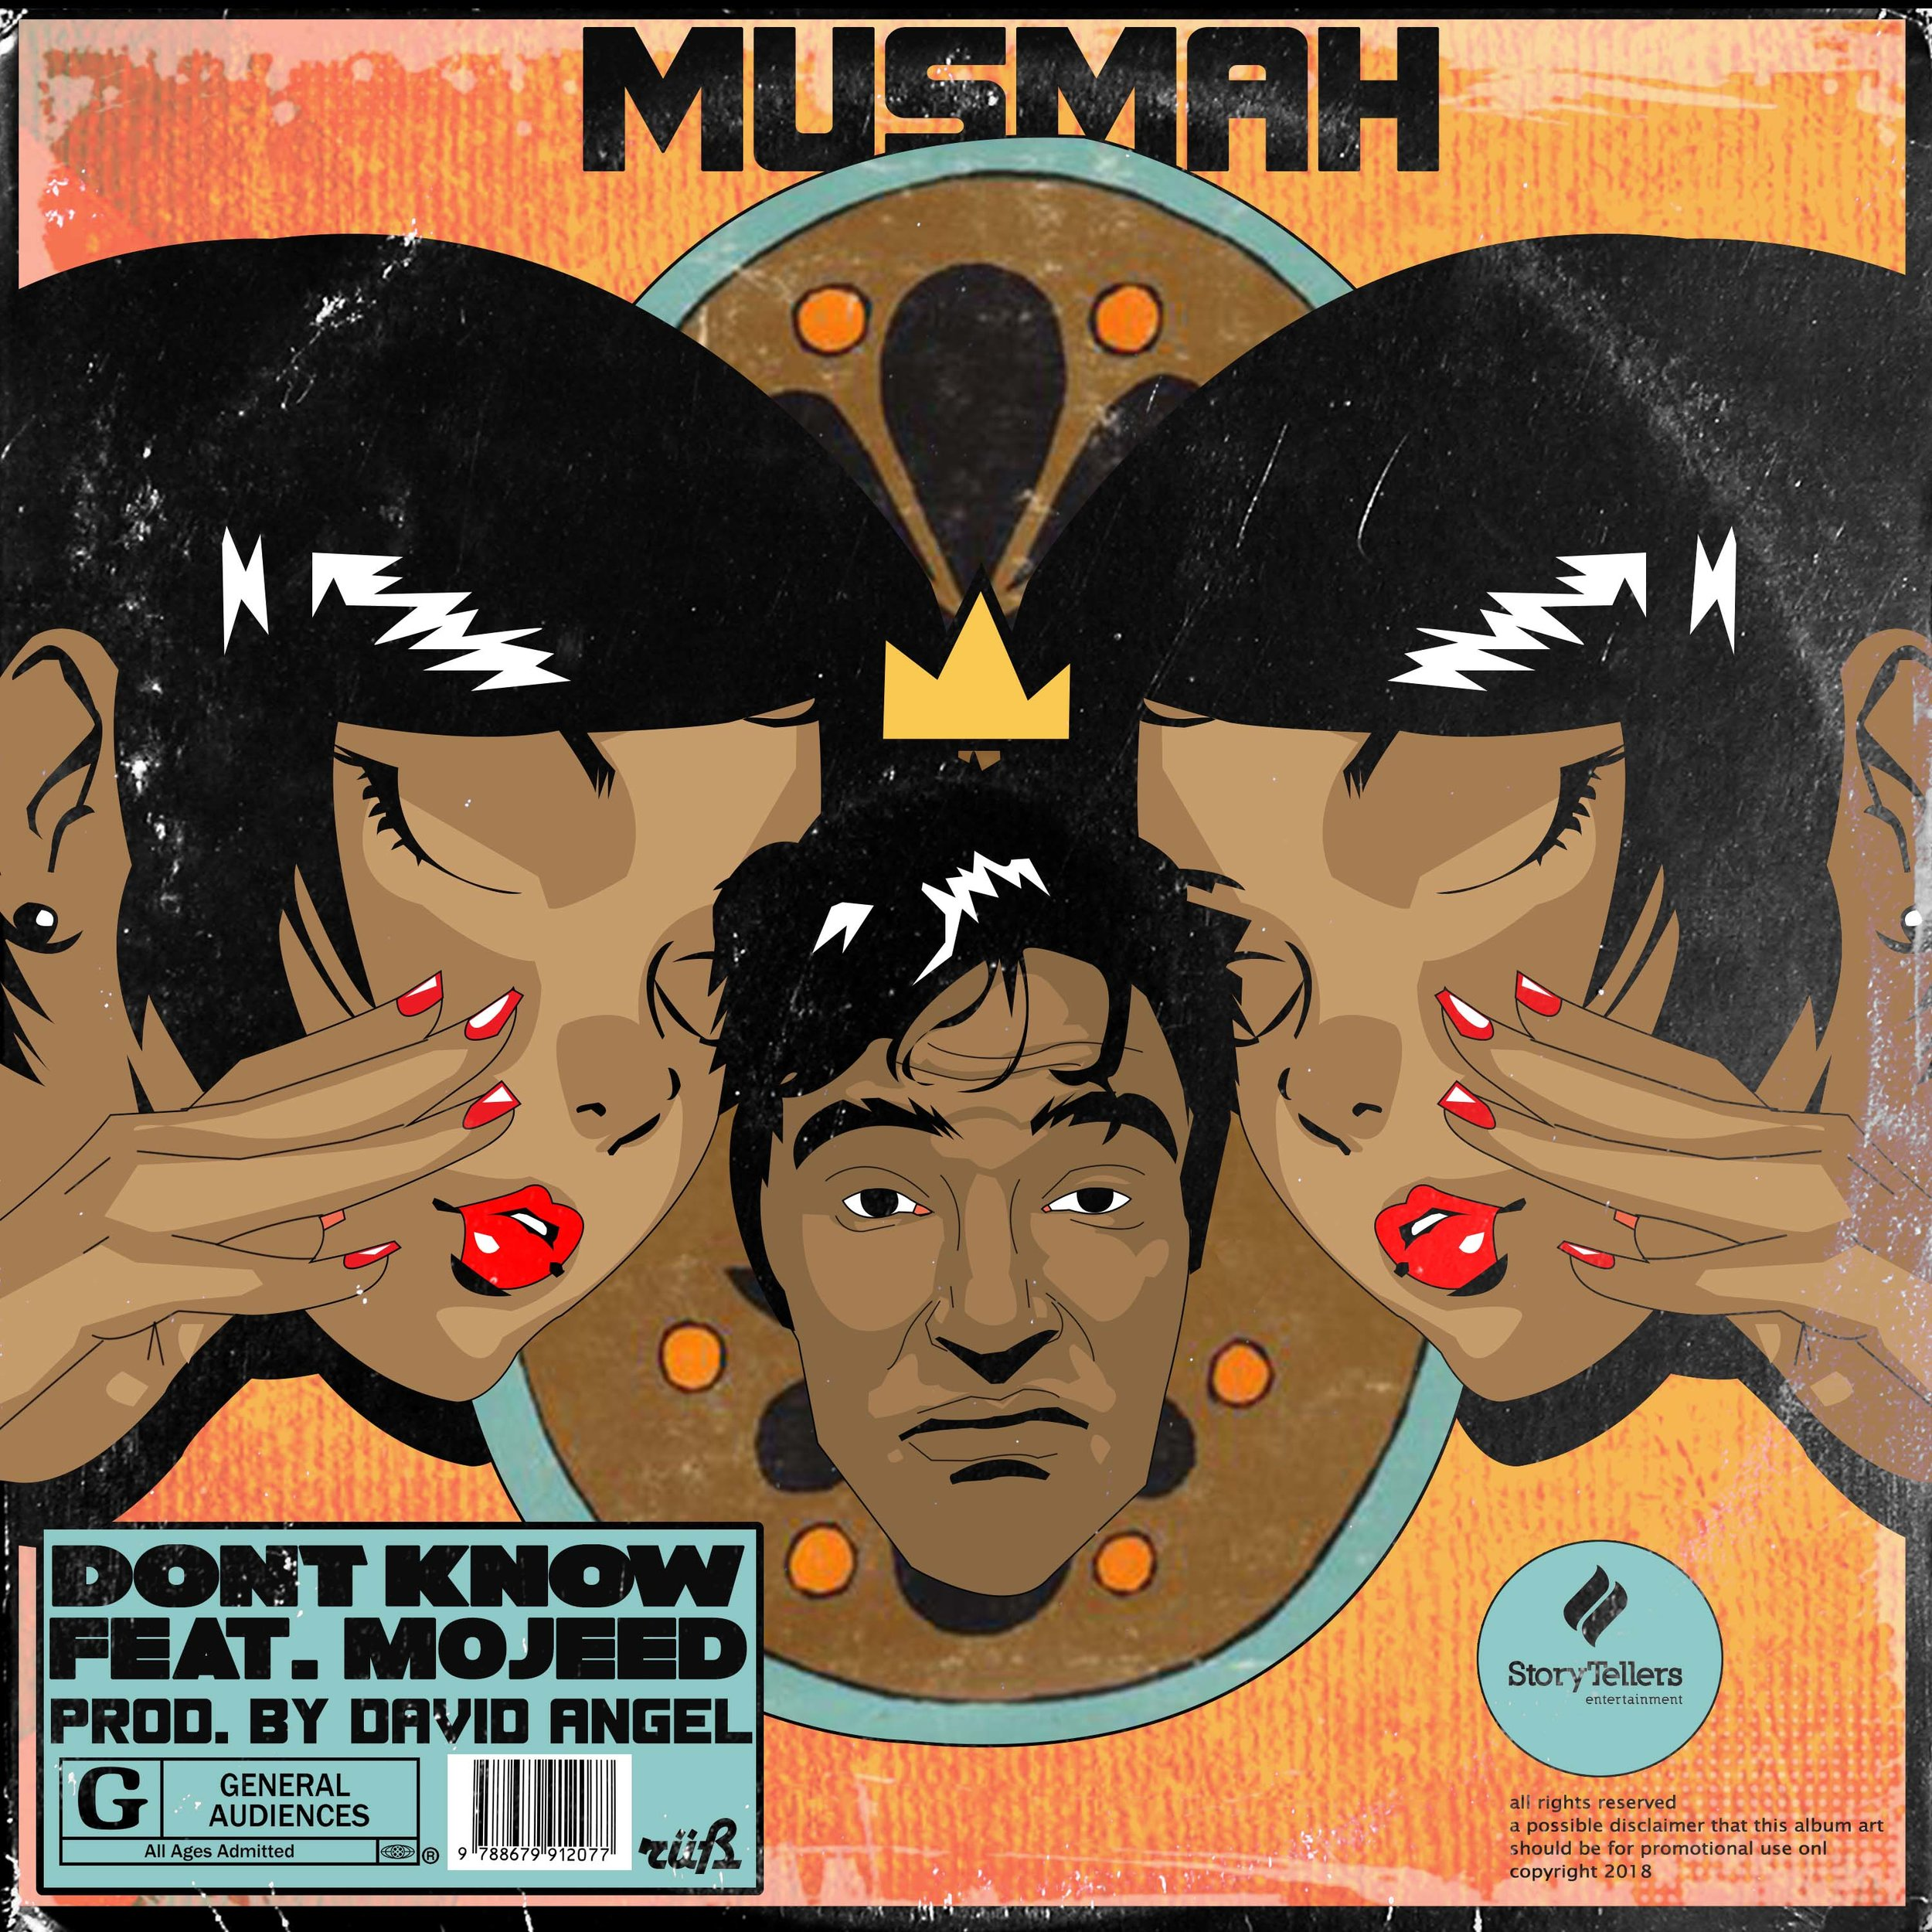 MUSMAH DONT KNOW COVERART RESIZED.jpg